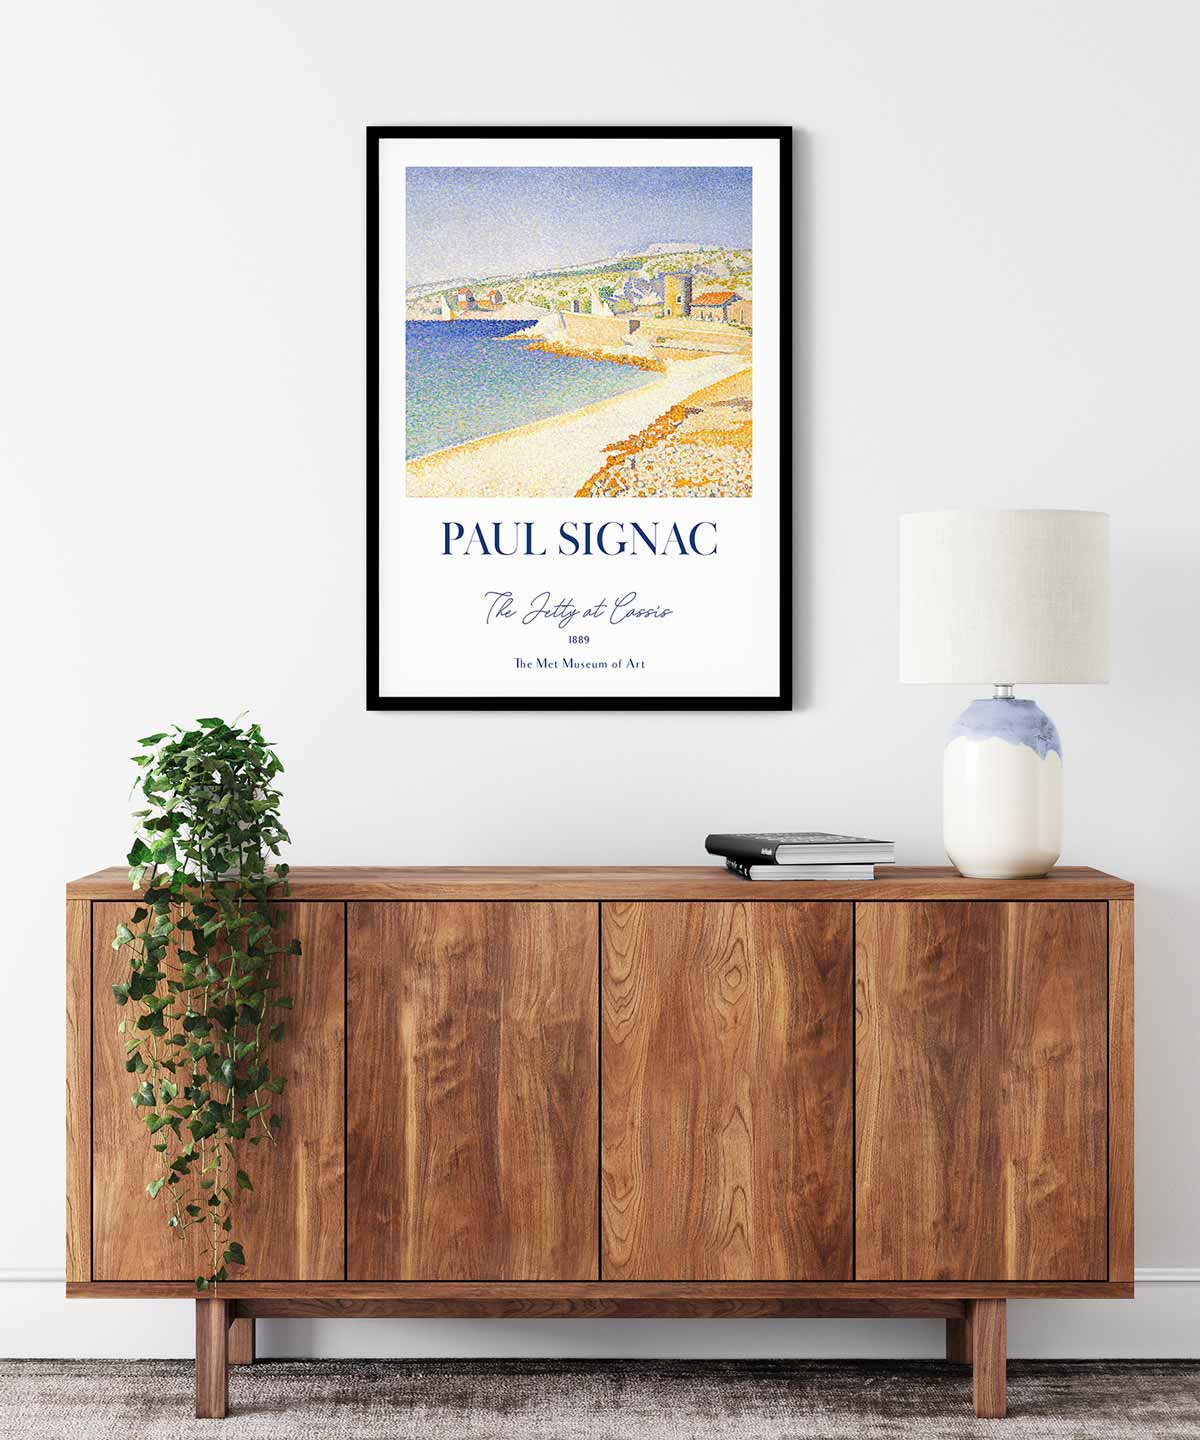 Paul-Signac-The-Jetty-at-Cassis-Poster--Black-Framed-Duwart